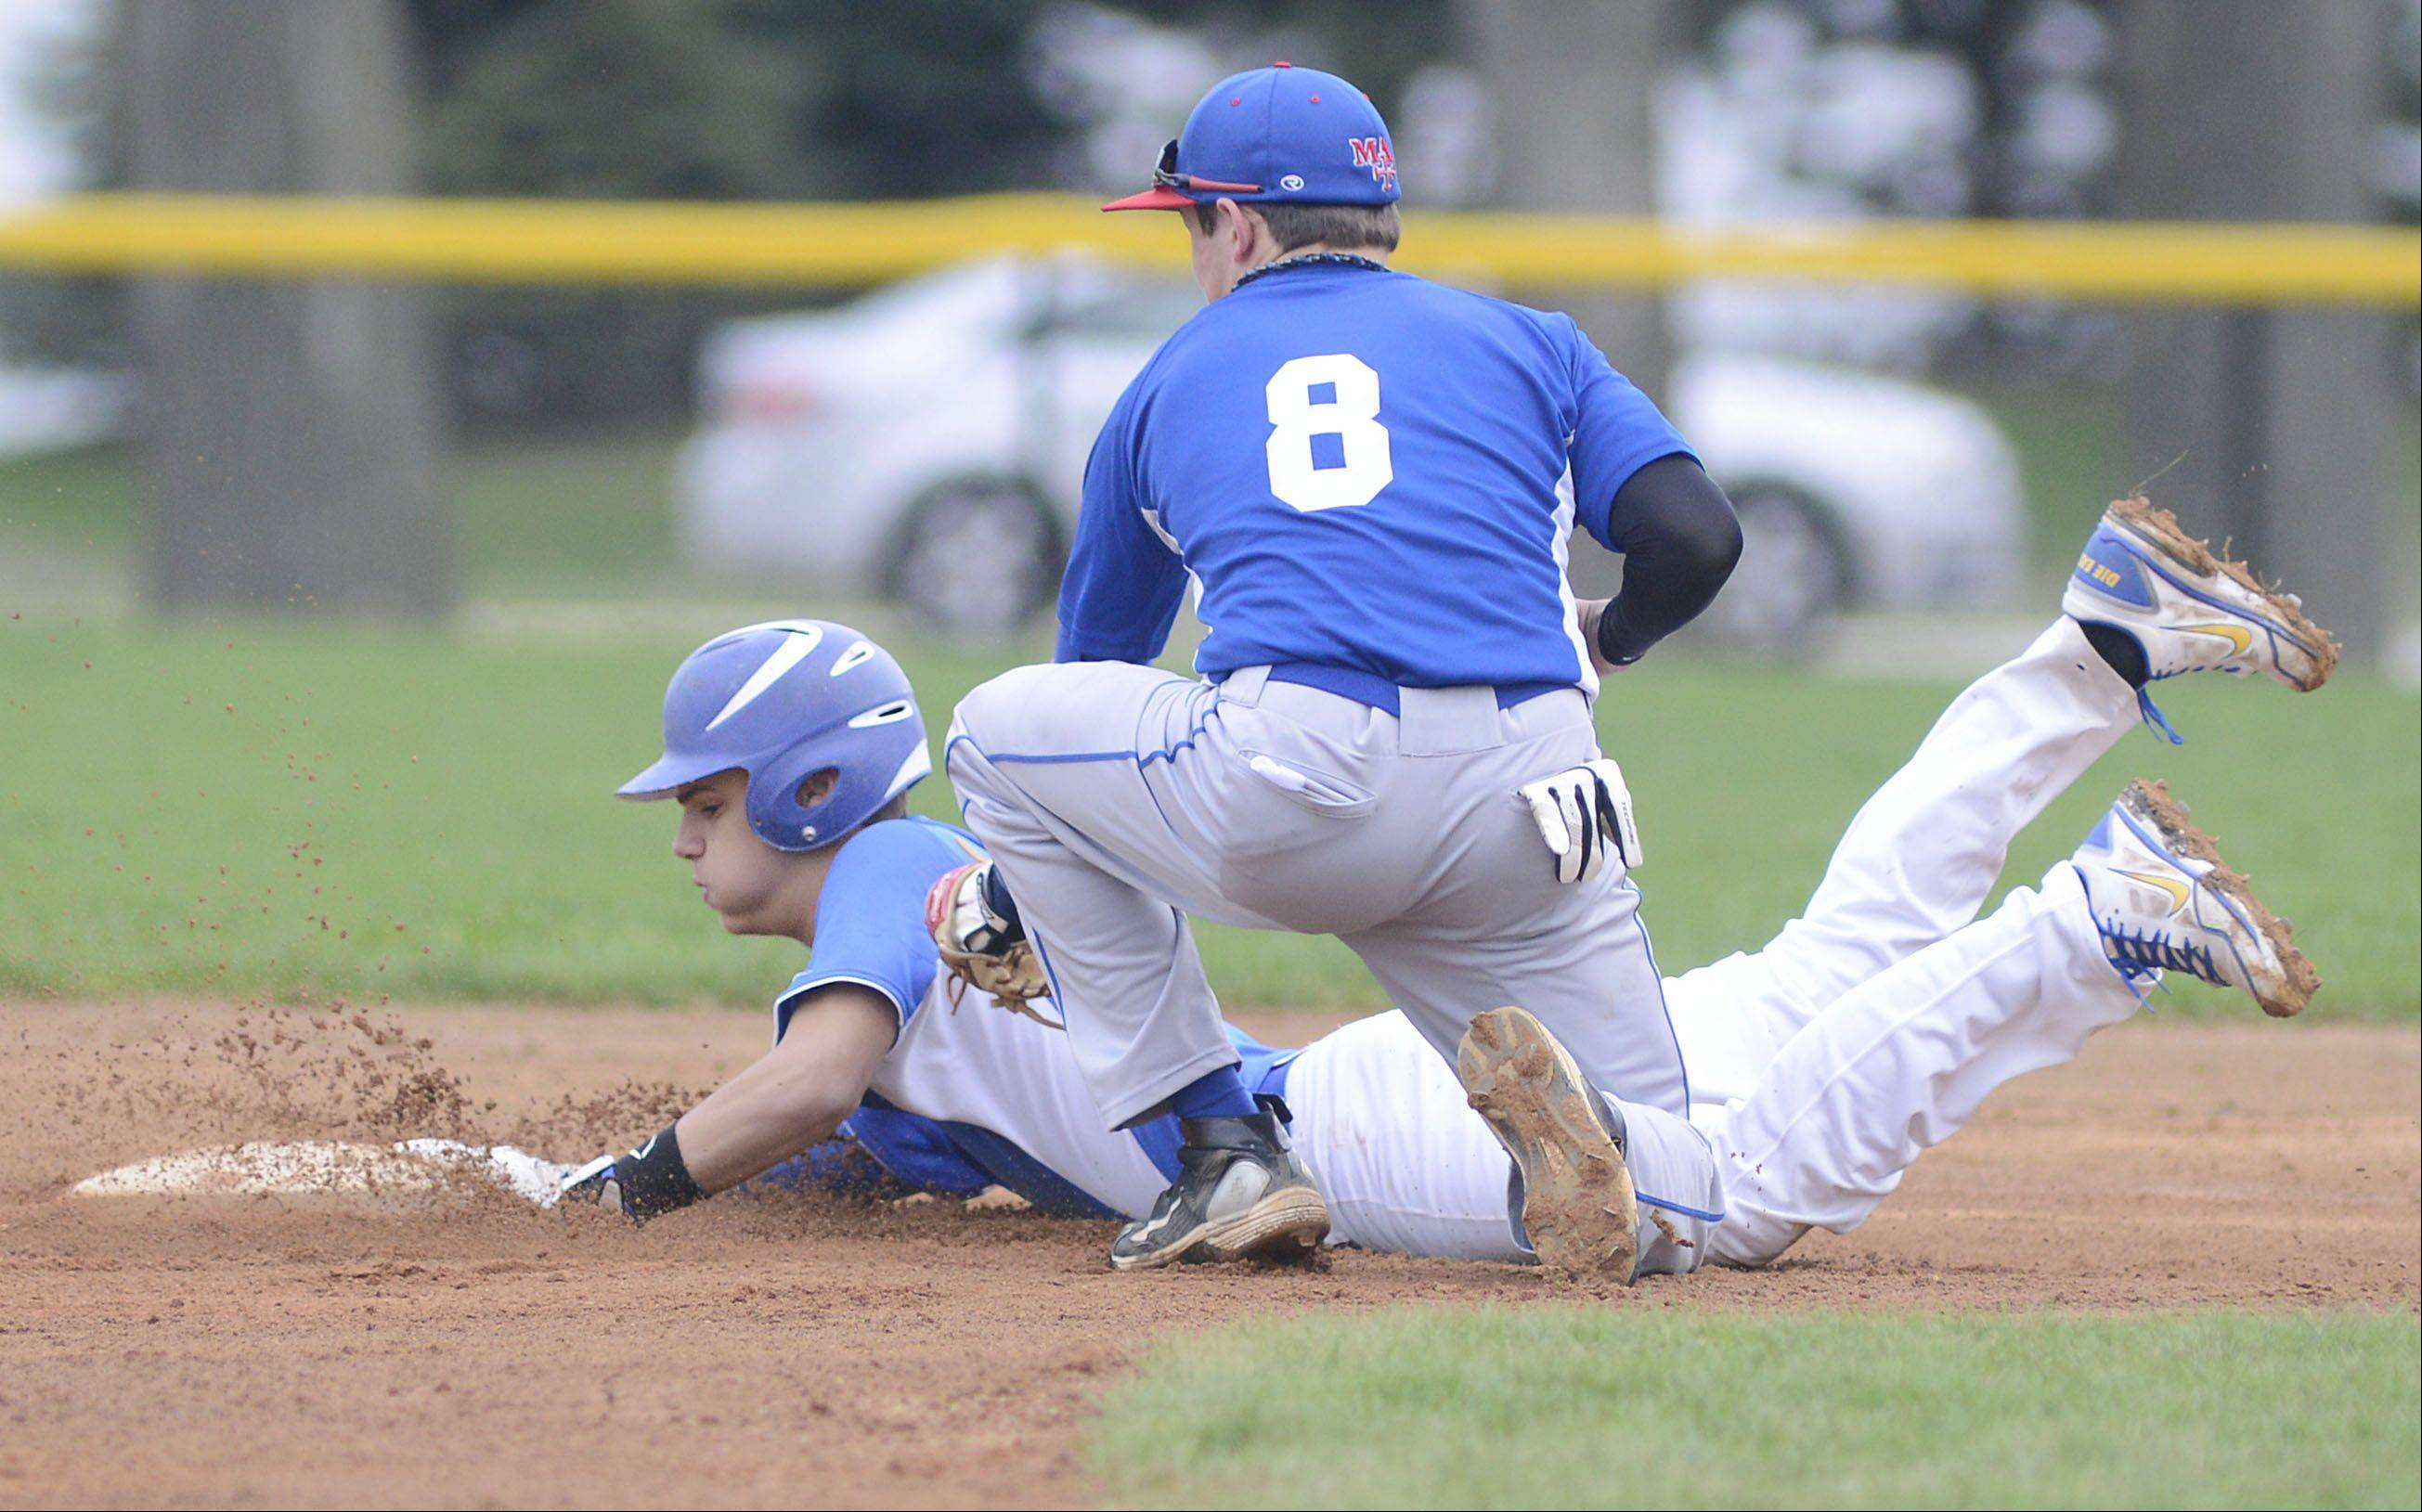 Marmion's Josh Meyers attempts to tag out Aurora Central's Jake McCarthy at second base to no avail in the first inning on Thursday, May 2.